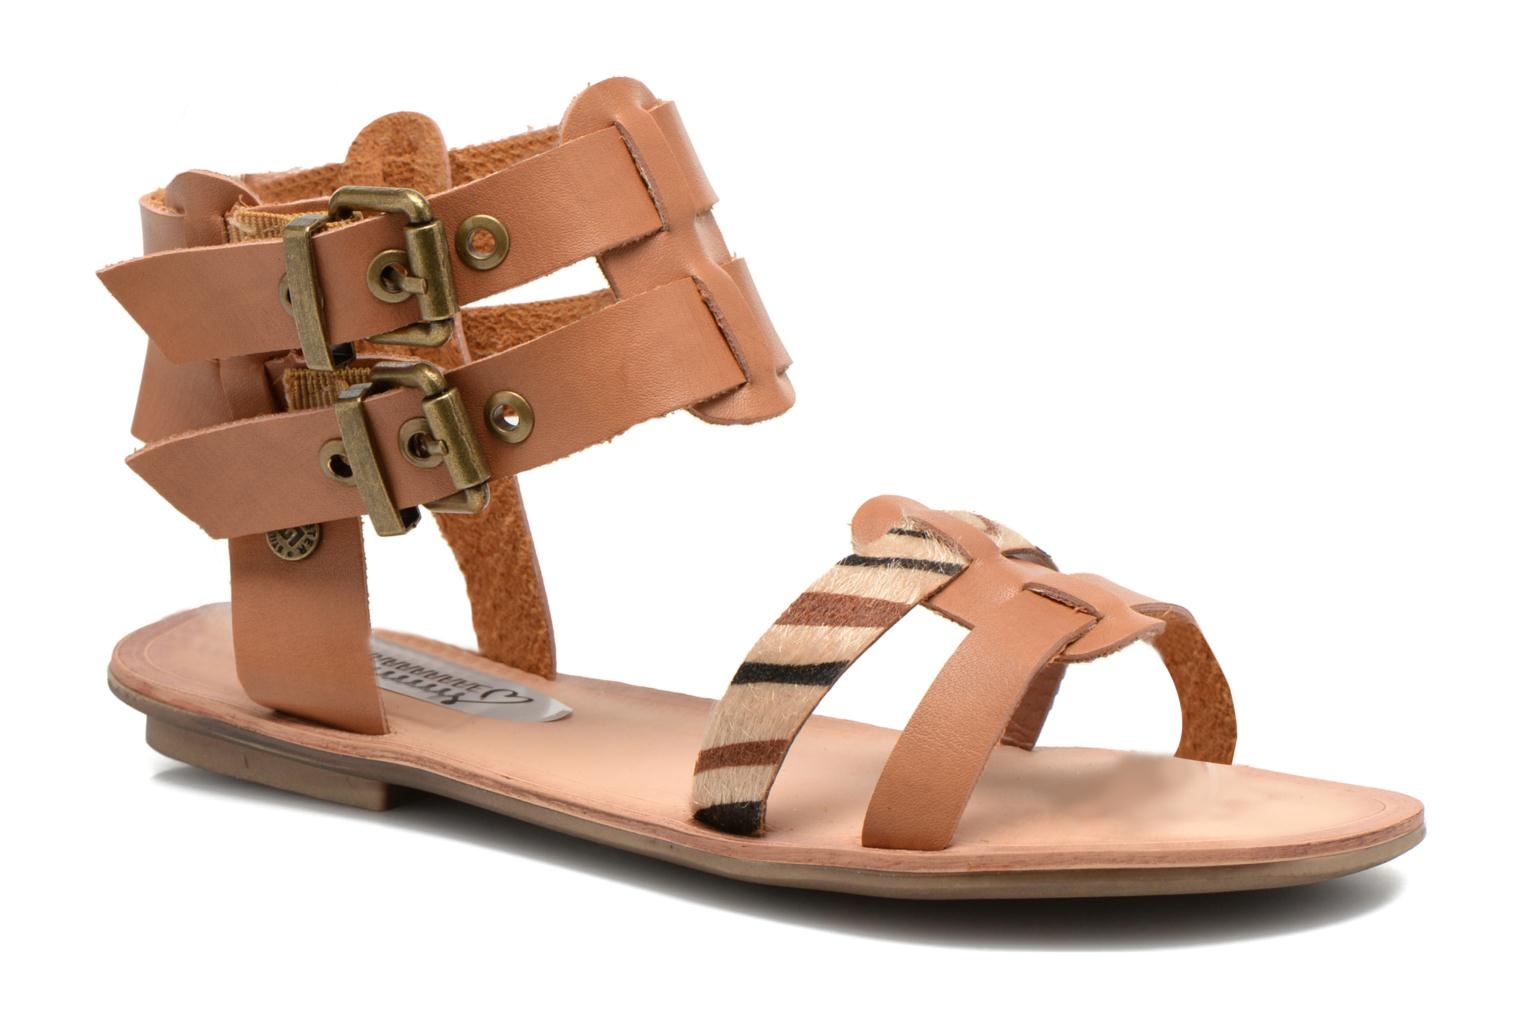 I Love Shoes - Damen - Kiro - Sandalen - braun fcA6PqK0Kg